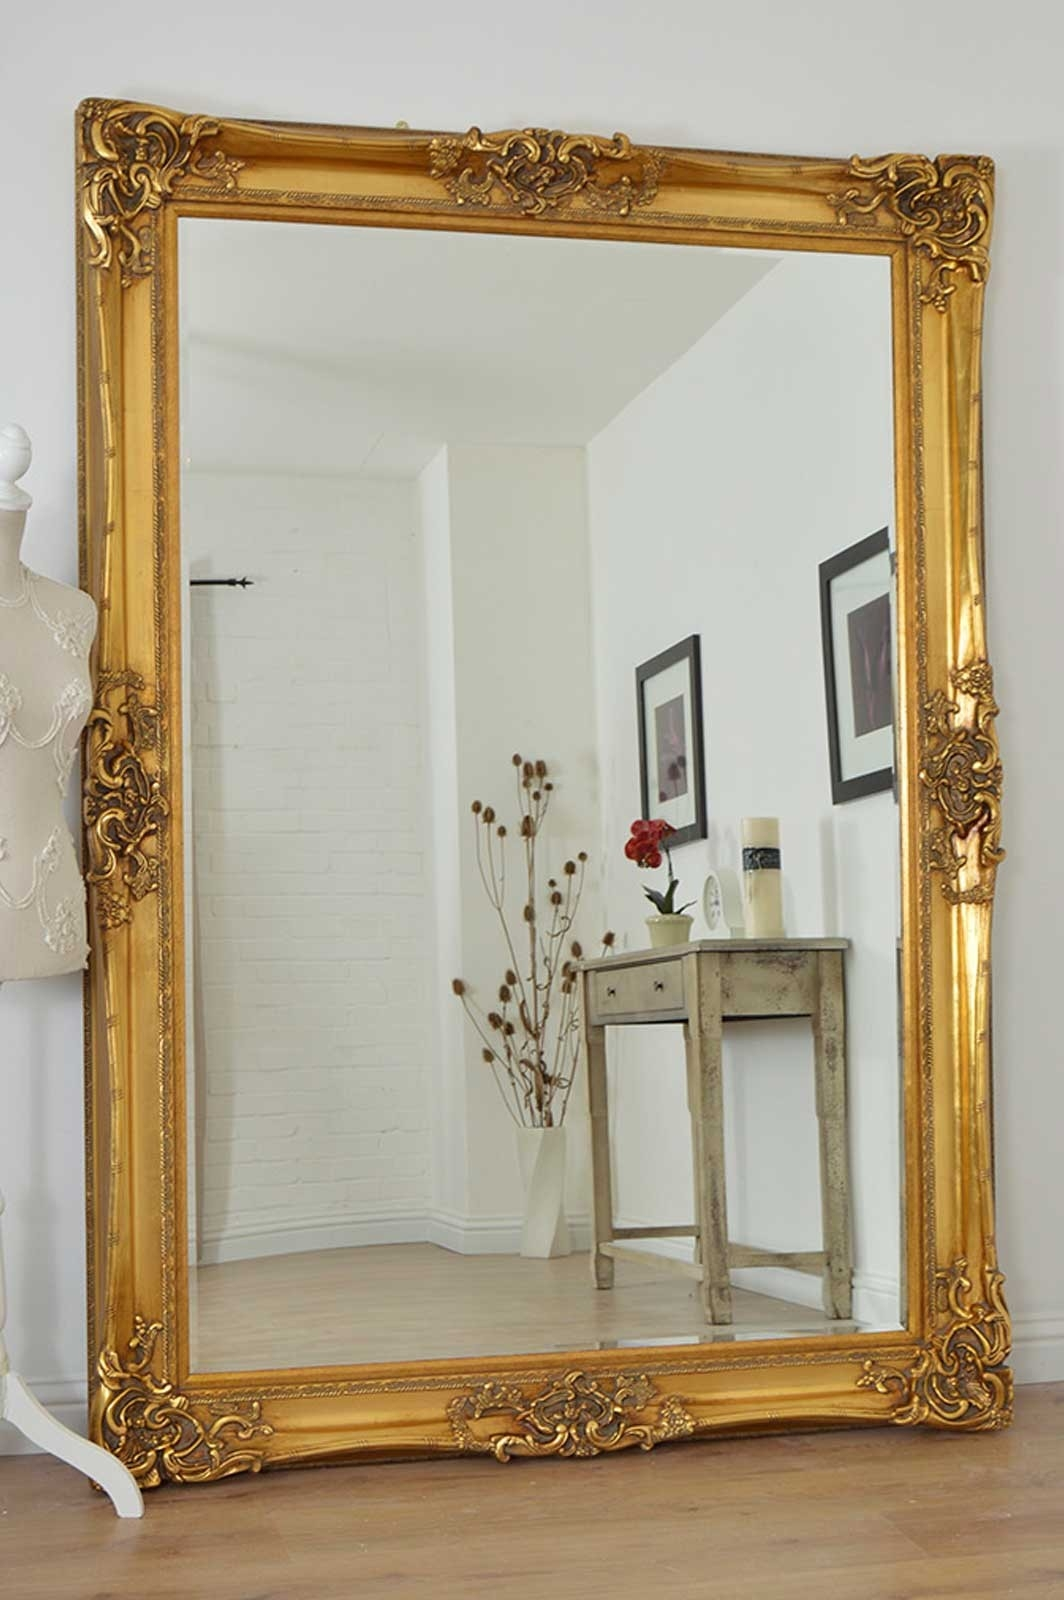 Large Gold Very Ornate Antique Design Wall Mirror 7ft X 5ft 213cm Throughout Victorian Mirrors For Sale (Image 12 of 15)